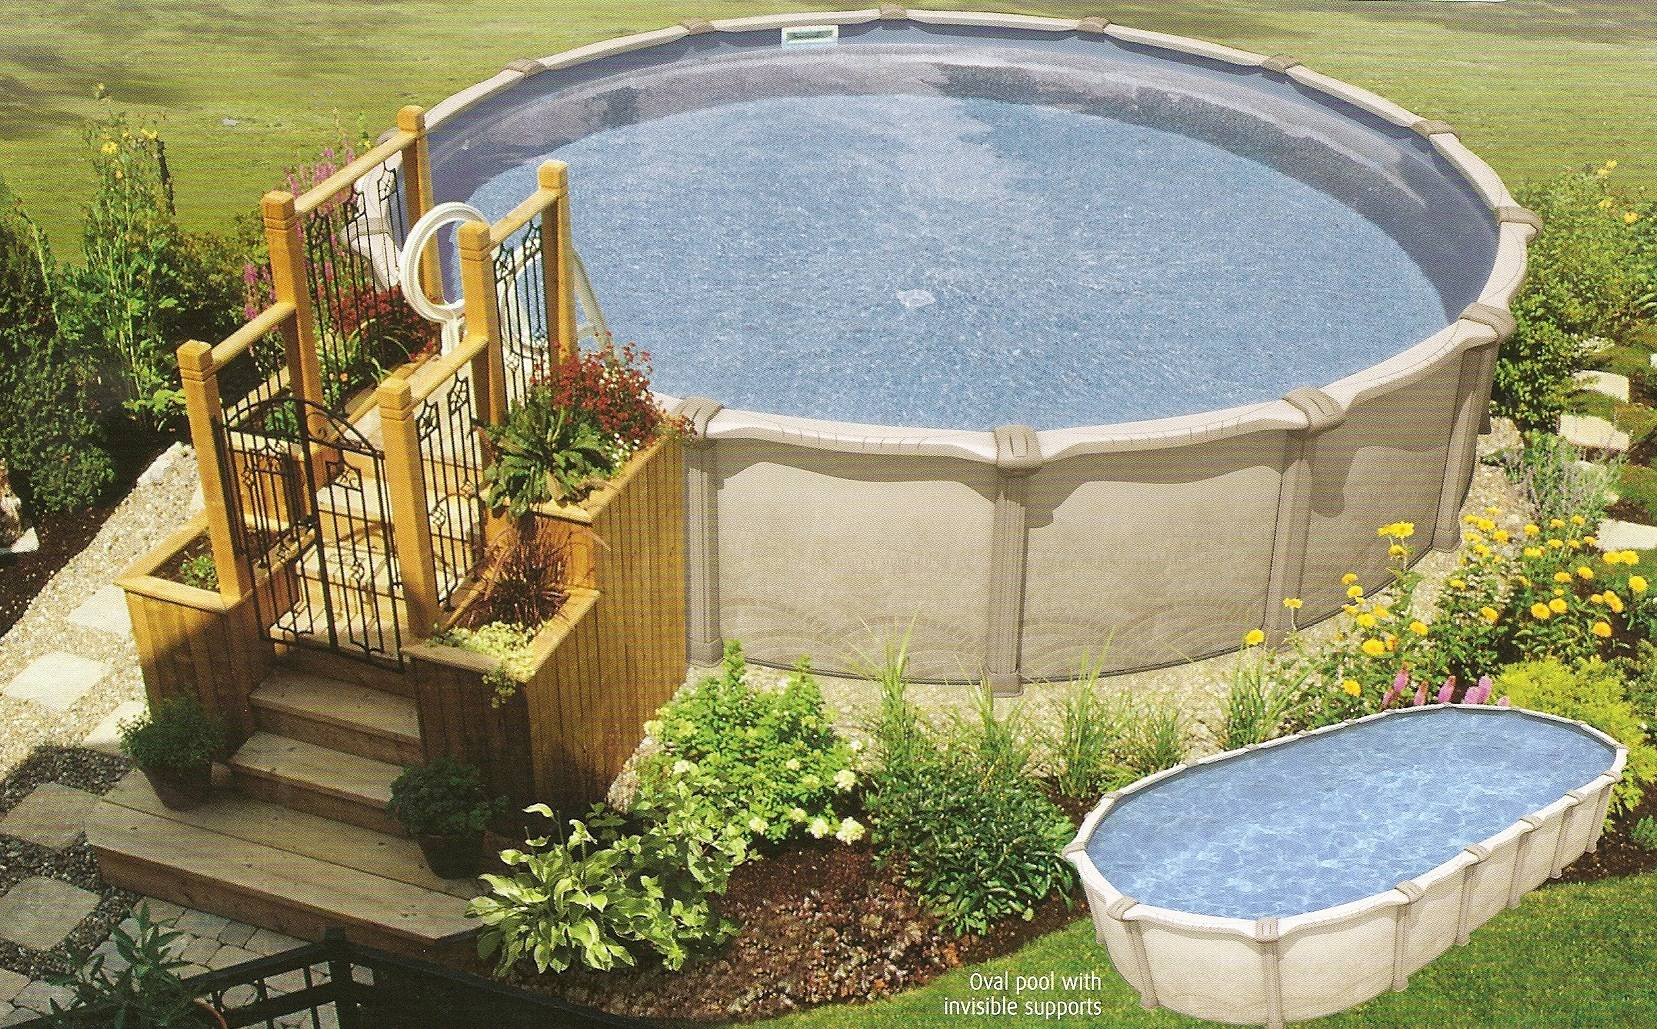 20 Above Ground Pool Deck Plans Free That Look So Elegant House Plans